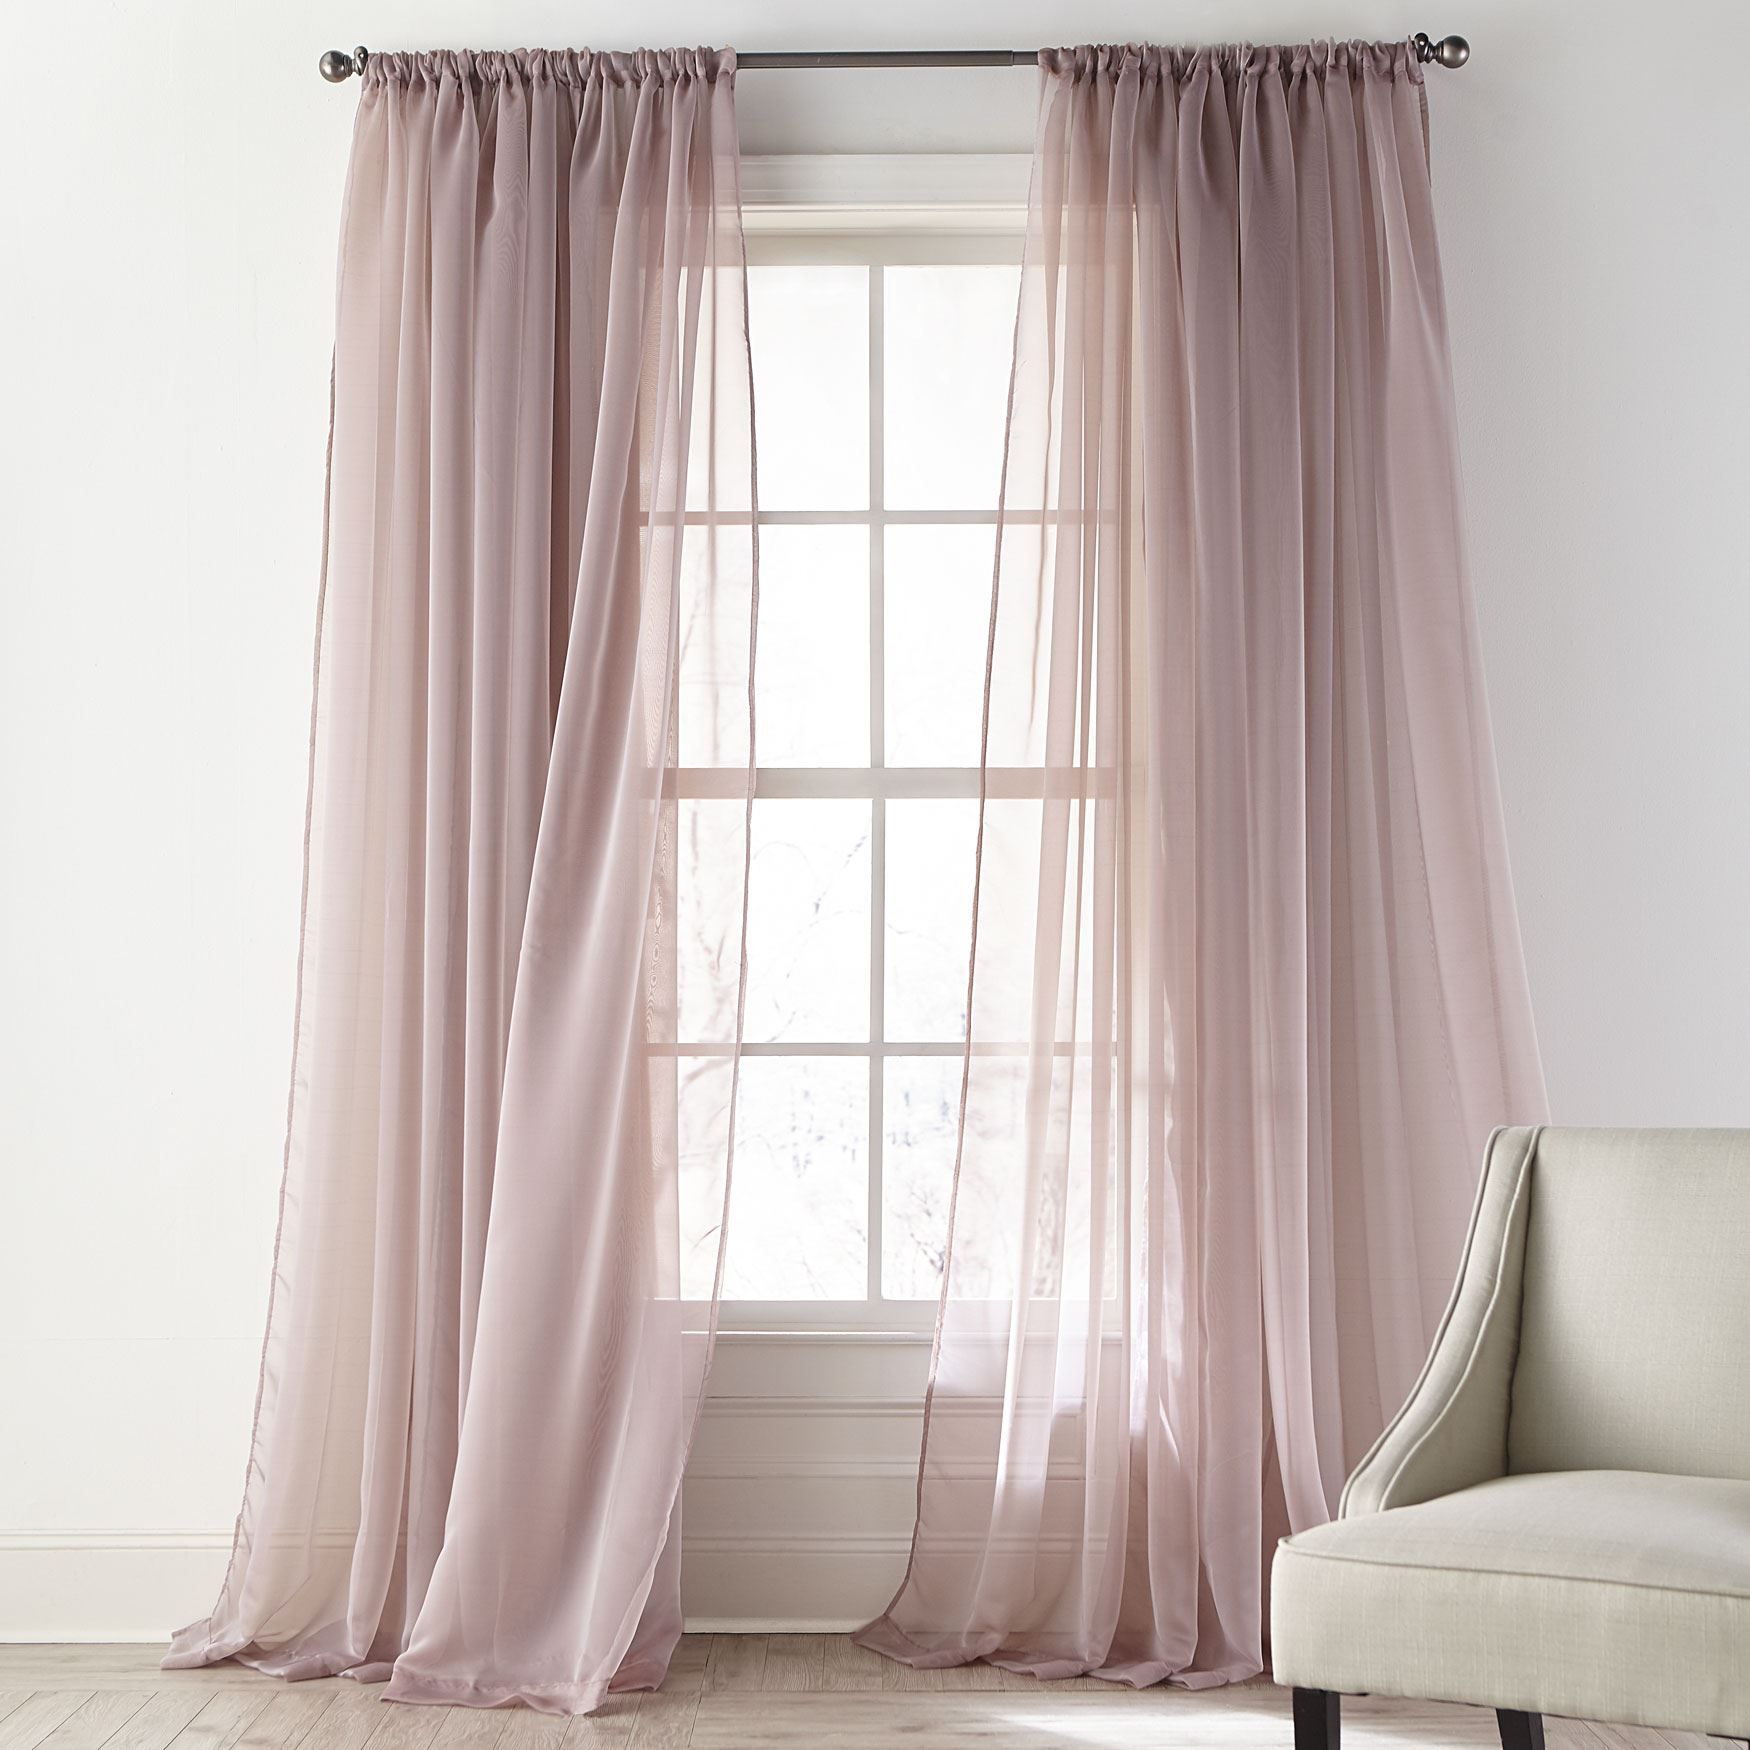 Ophelia Shimmer Curtain Sheer Curtains Brylane Home Sheer